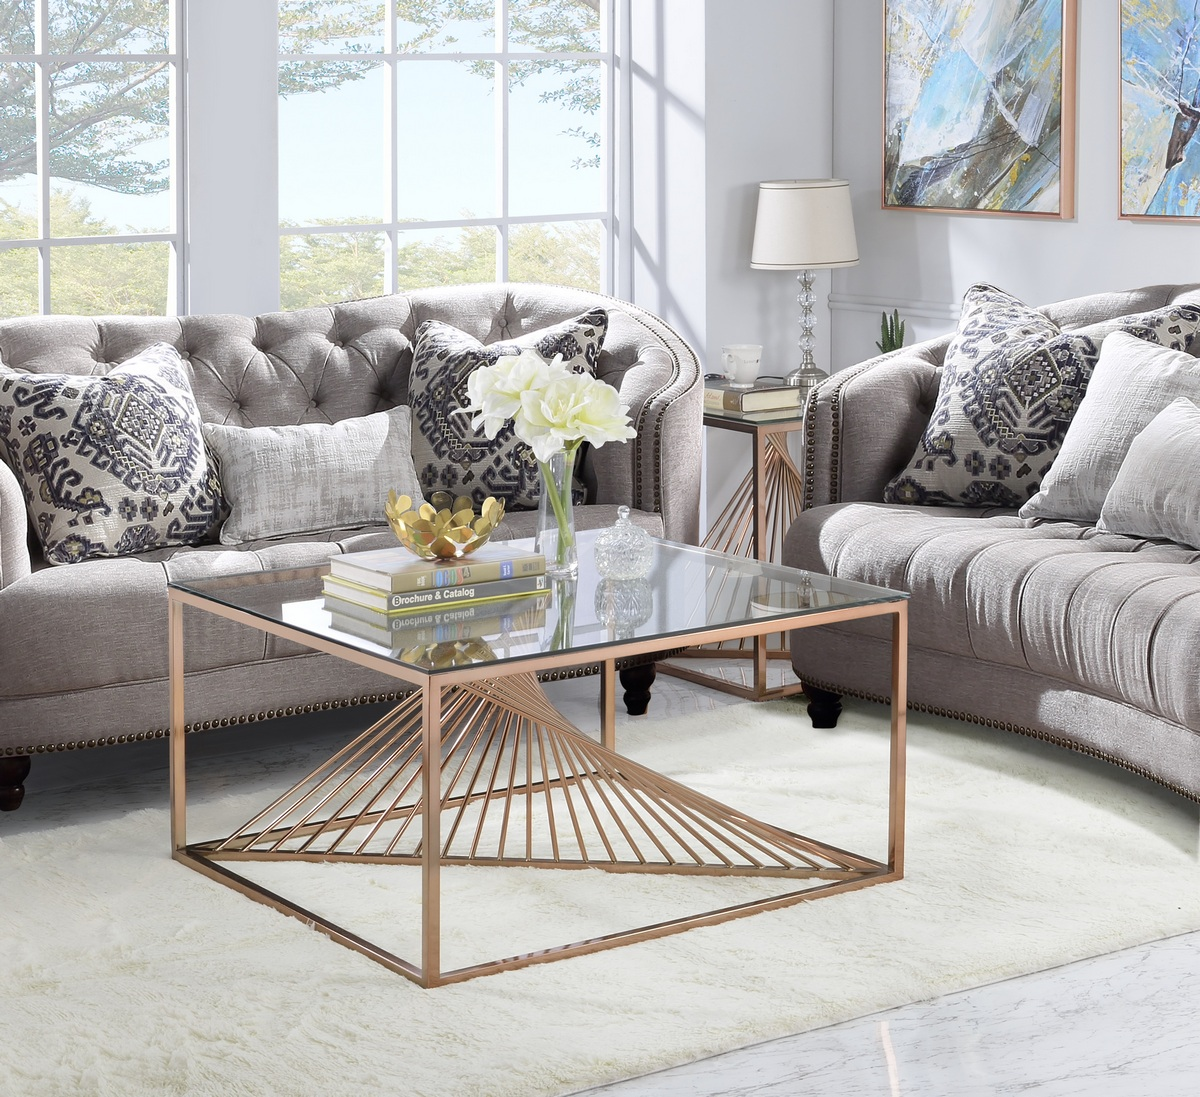 Furniture | Copper | Coffee | Clear | Brush | Glass | Table